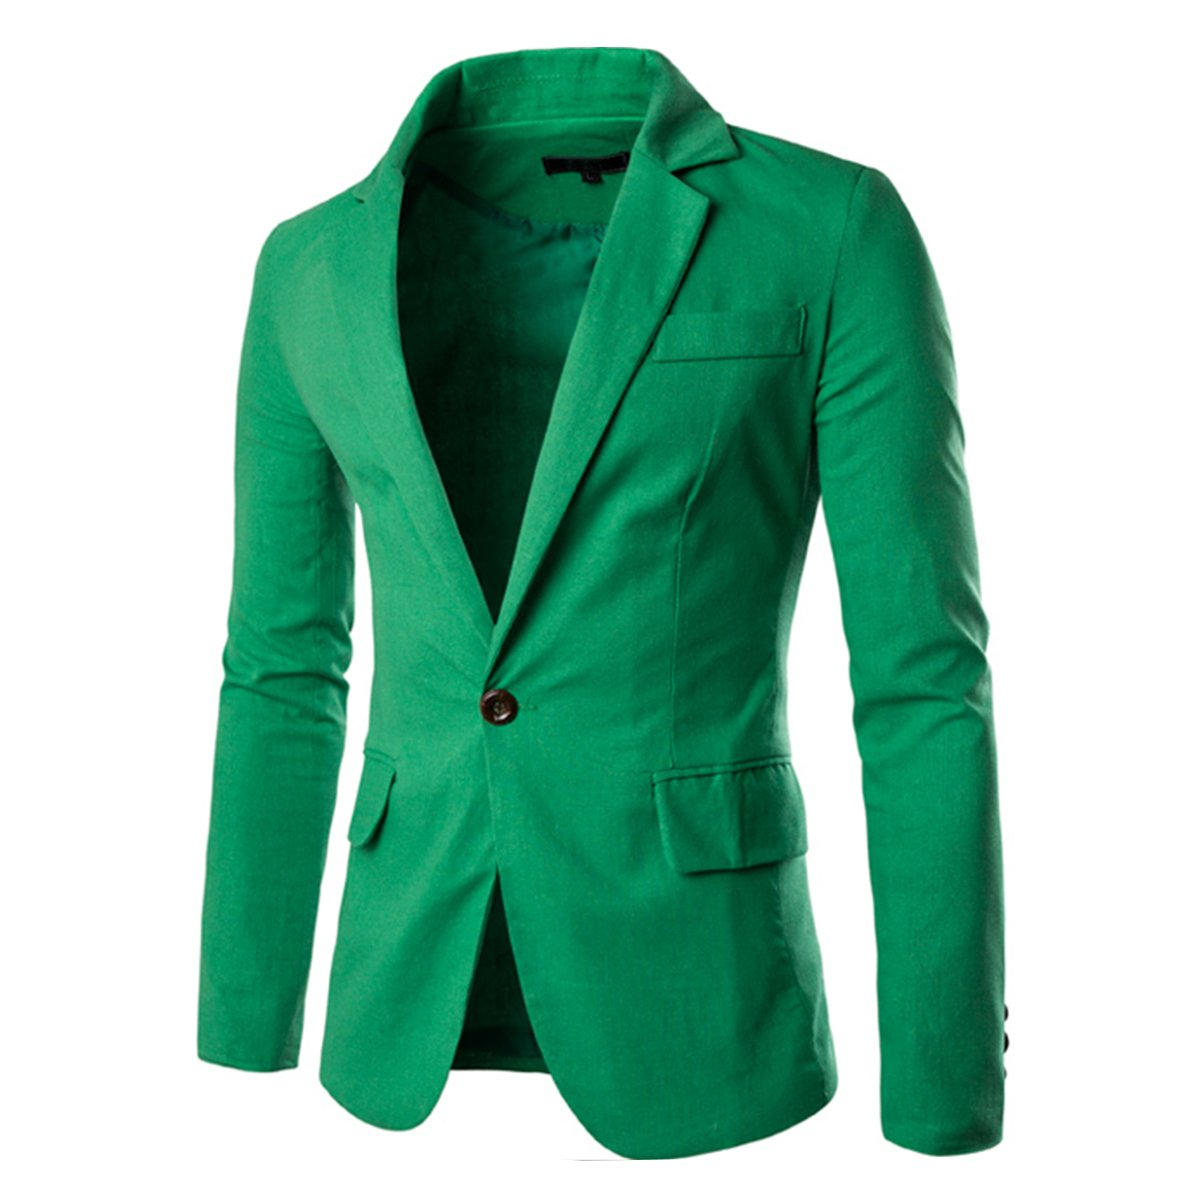 Pishon Men's Linen Blazer Lightweight Casual Solid One Button Slim Fit Sport Coat, Green, Tag Size XXXXL=US Size XL